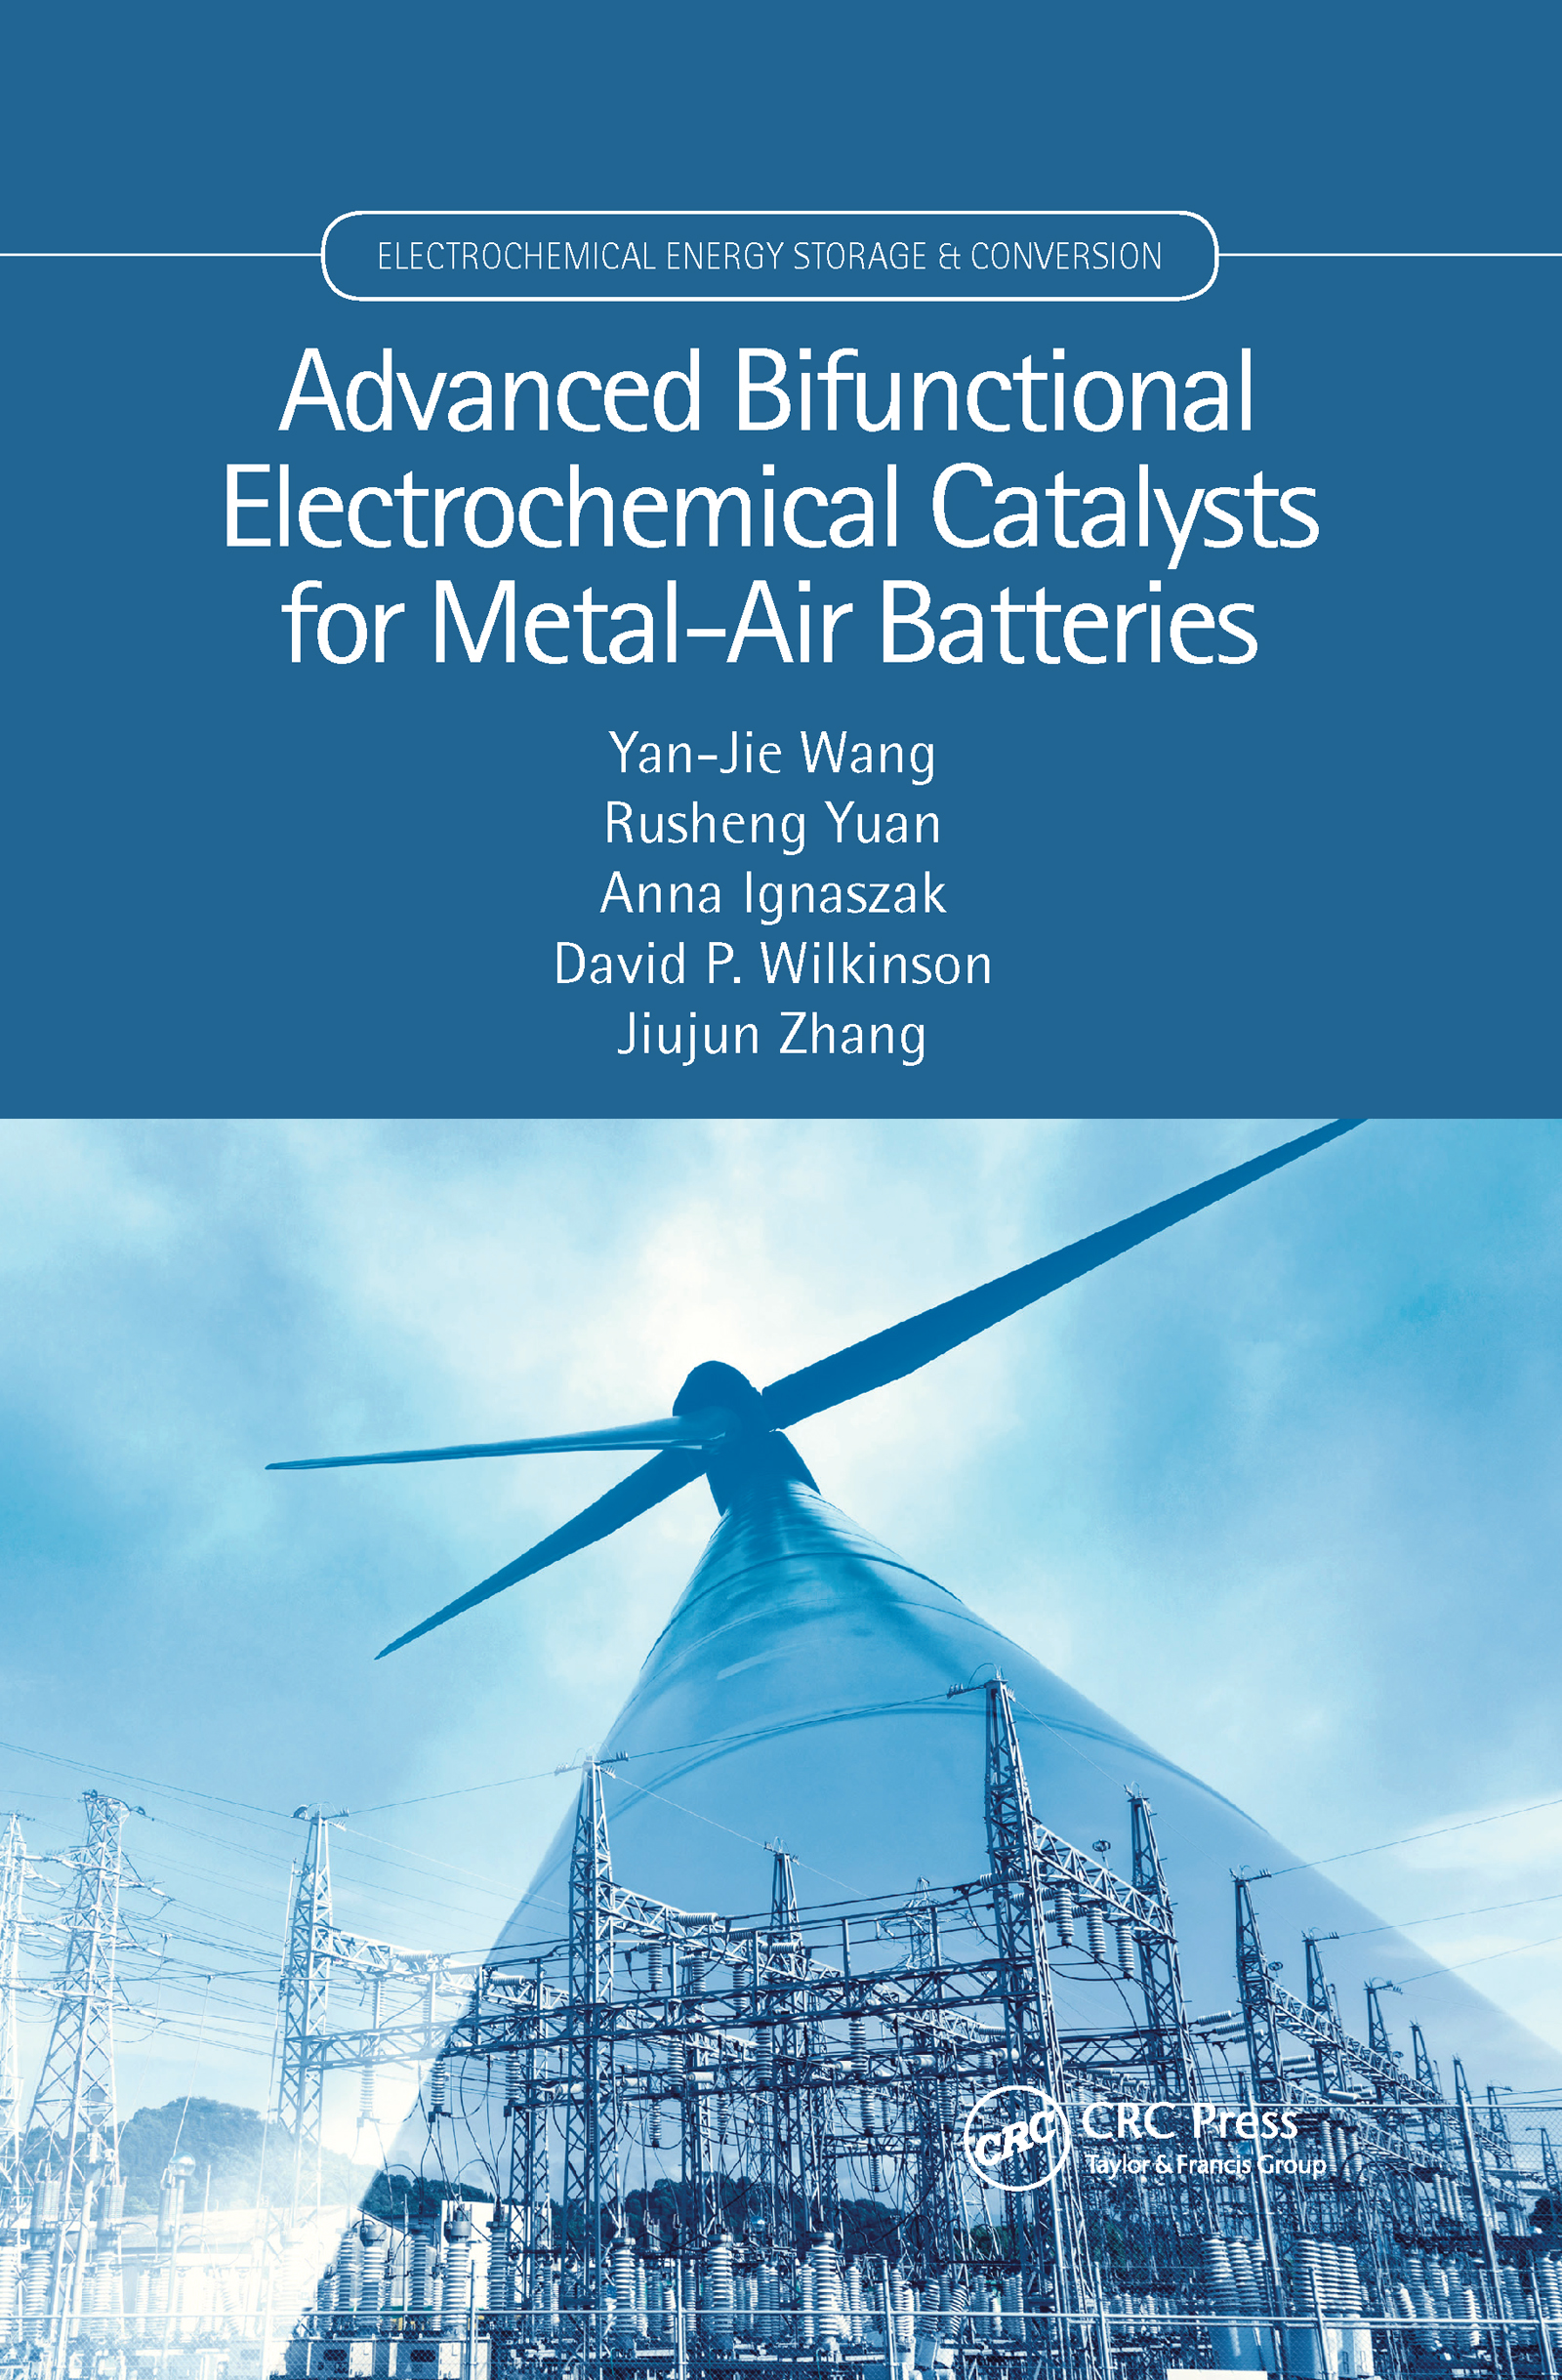 Advanced Bifunctional Electrochemical Catalysts for Metal-Air Batteries